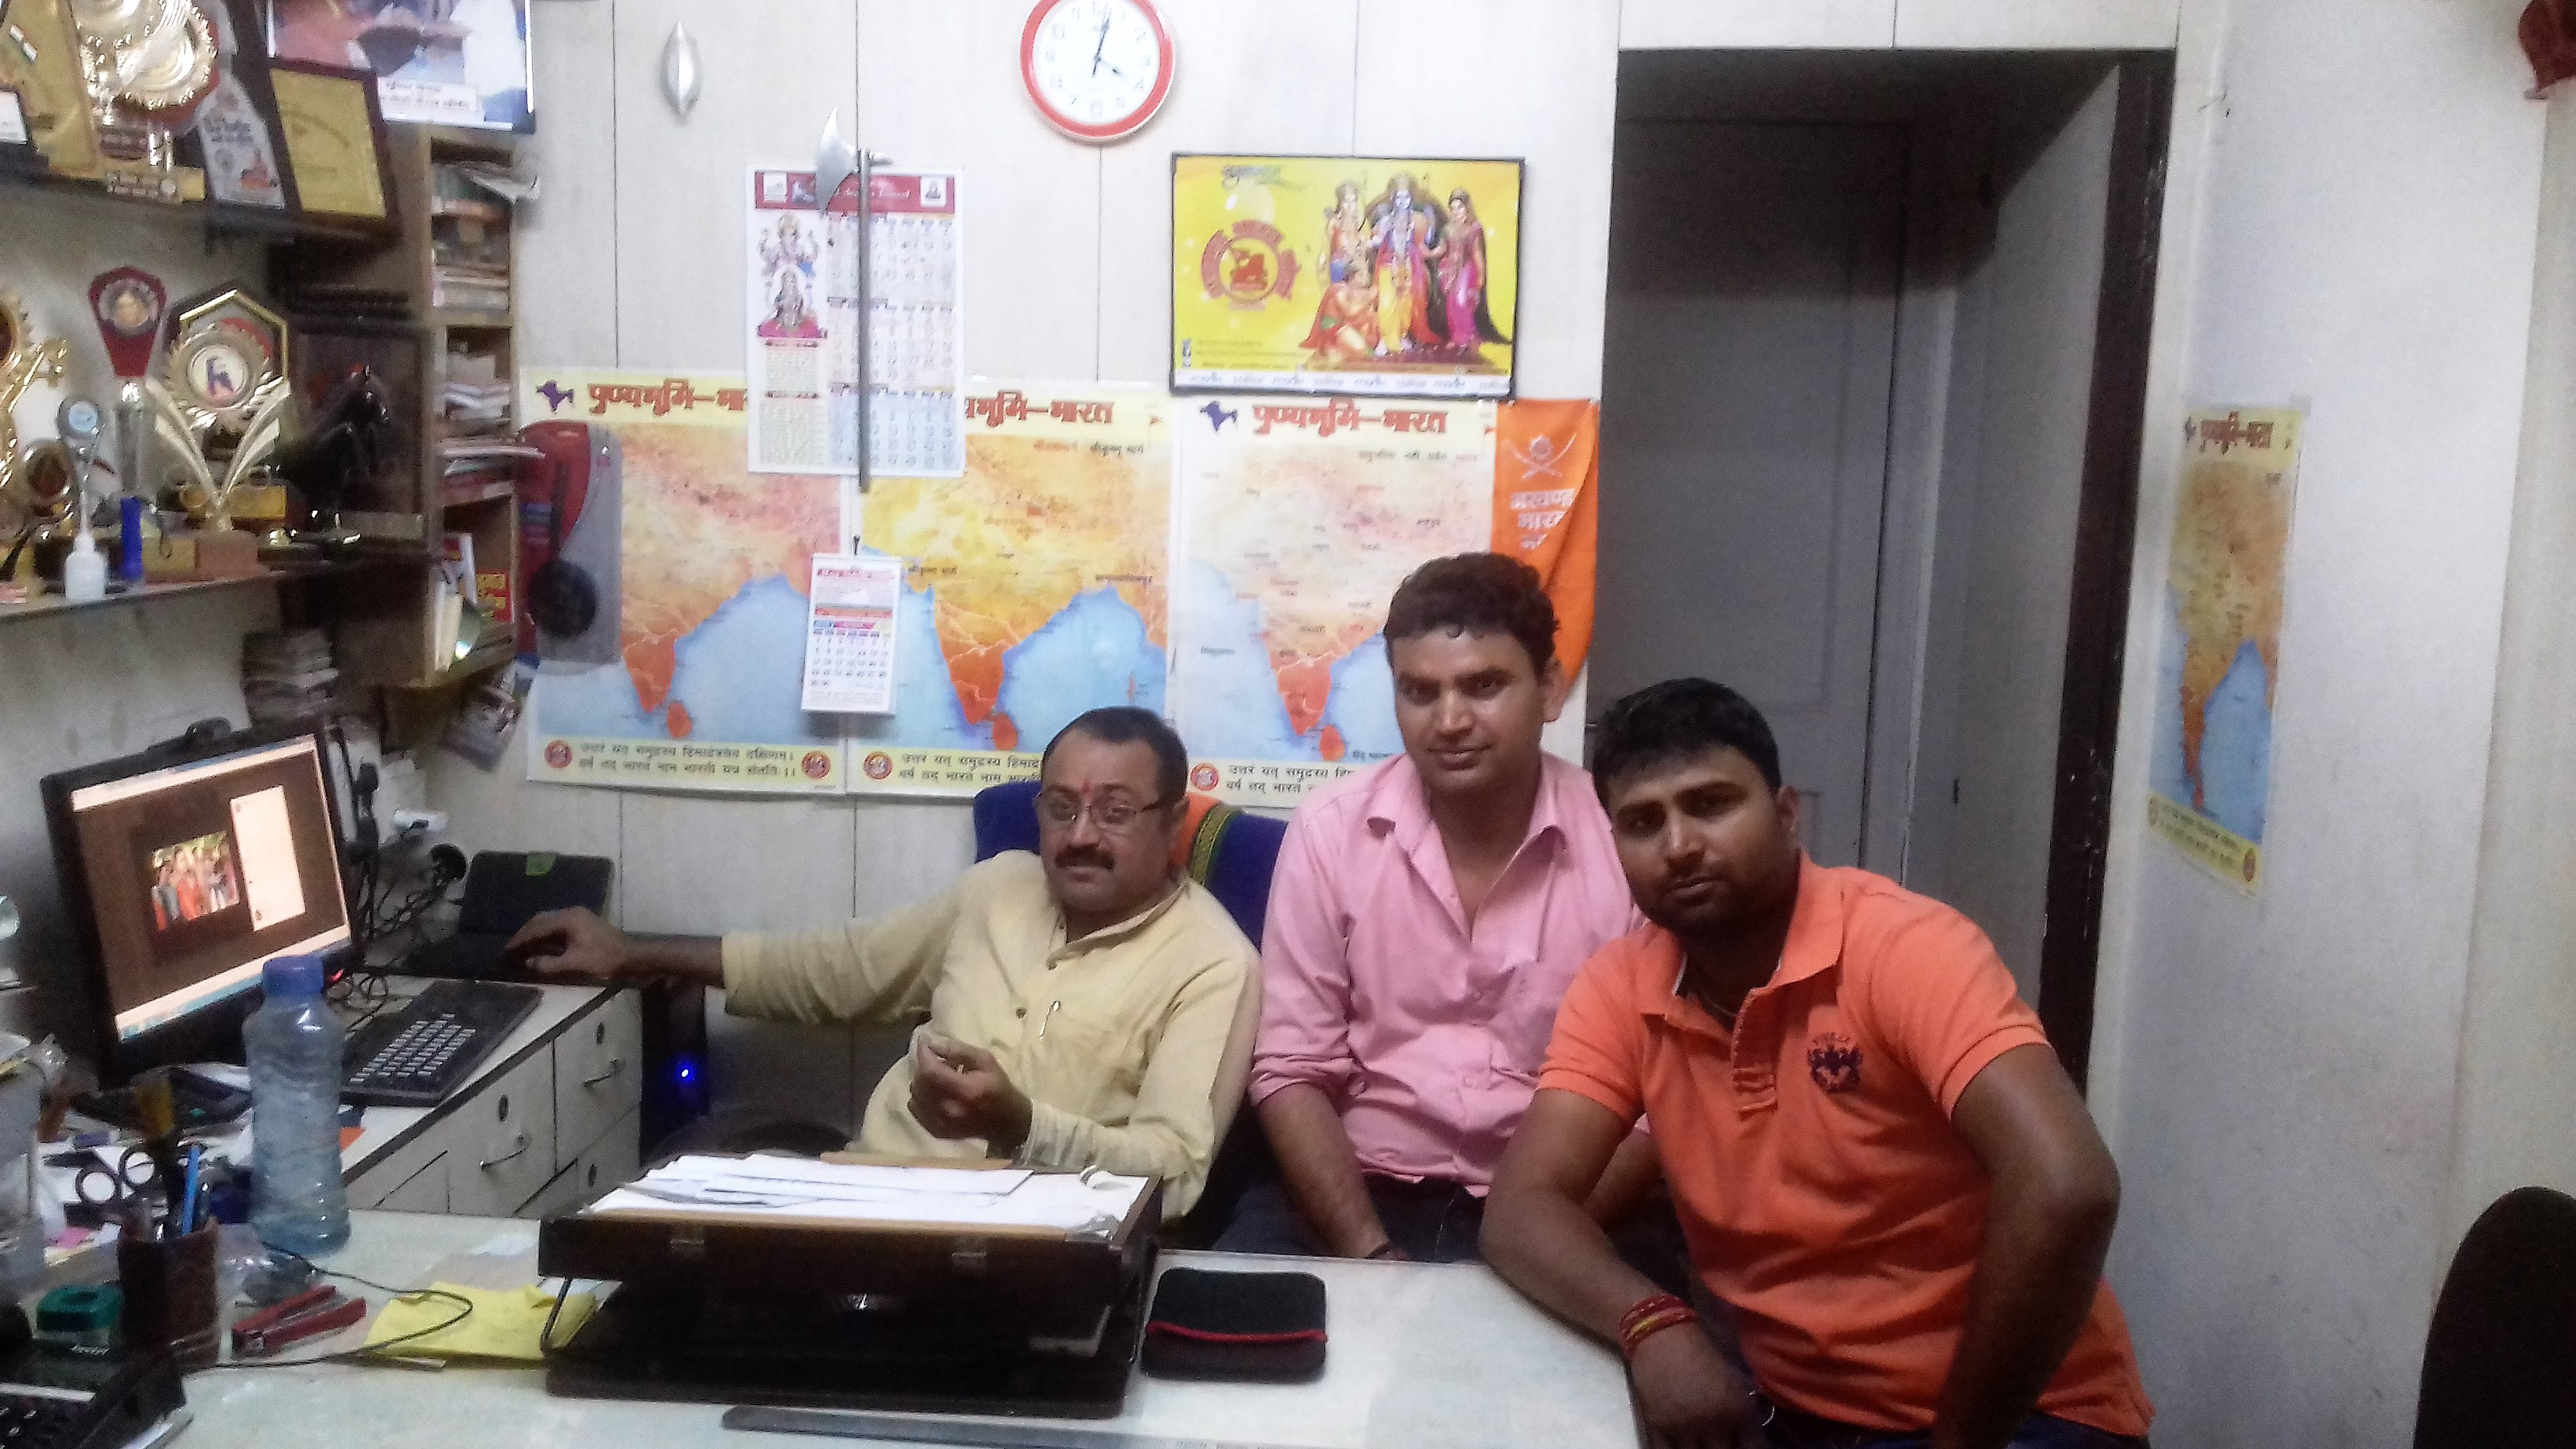 From left: Sandeep Ahuja, Virander Singh and Kuldeep Rathore in Akhand Bharat Morcha's office in Madhu Vihar. Photo credit: Abhishek Dey